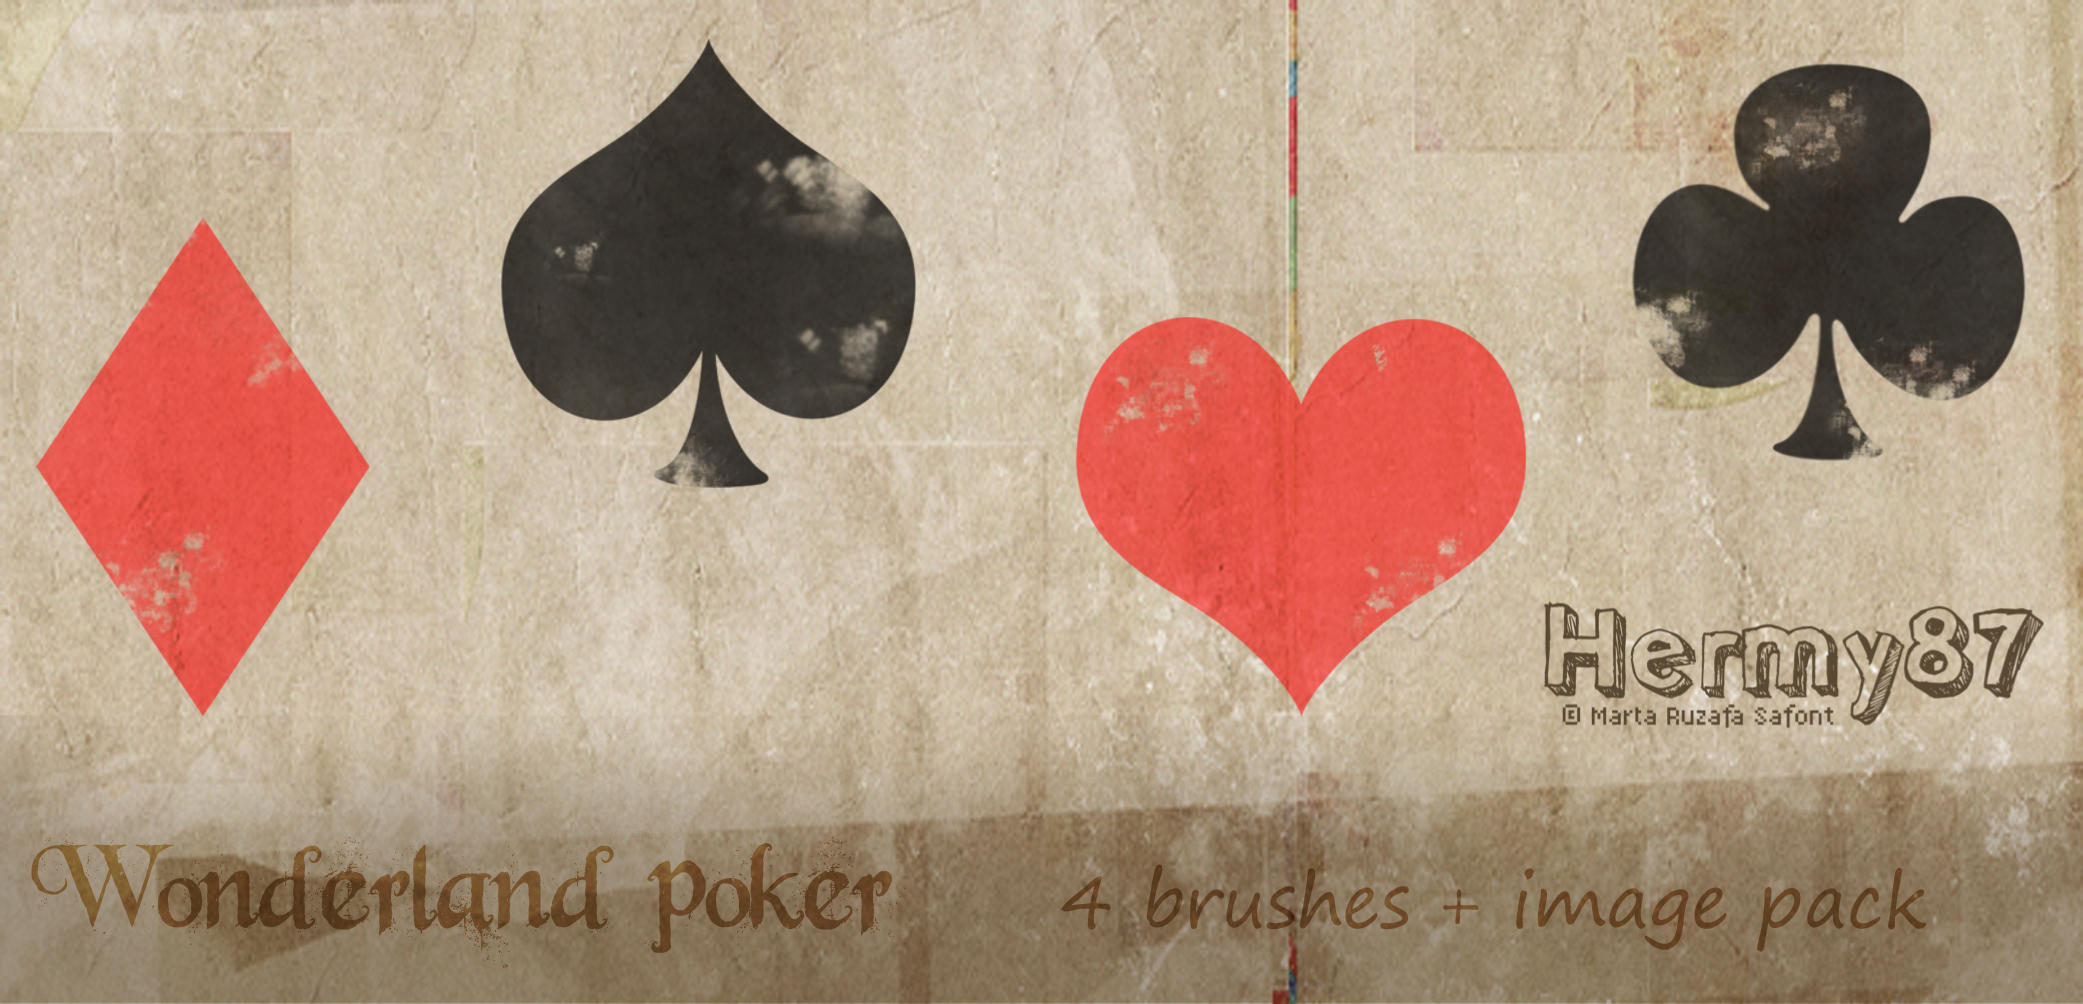 Poker card brushes photoshop slots and poker stunning set of illustrations adorn artistic poker cards stunning set of illustrations adorn a new card for a deck of poker photoshop brushes reheart Gallery